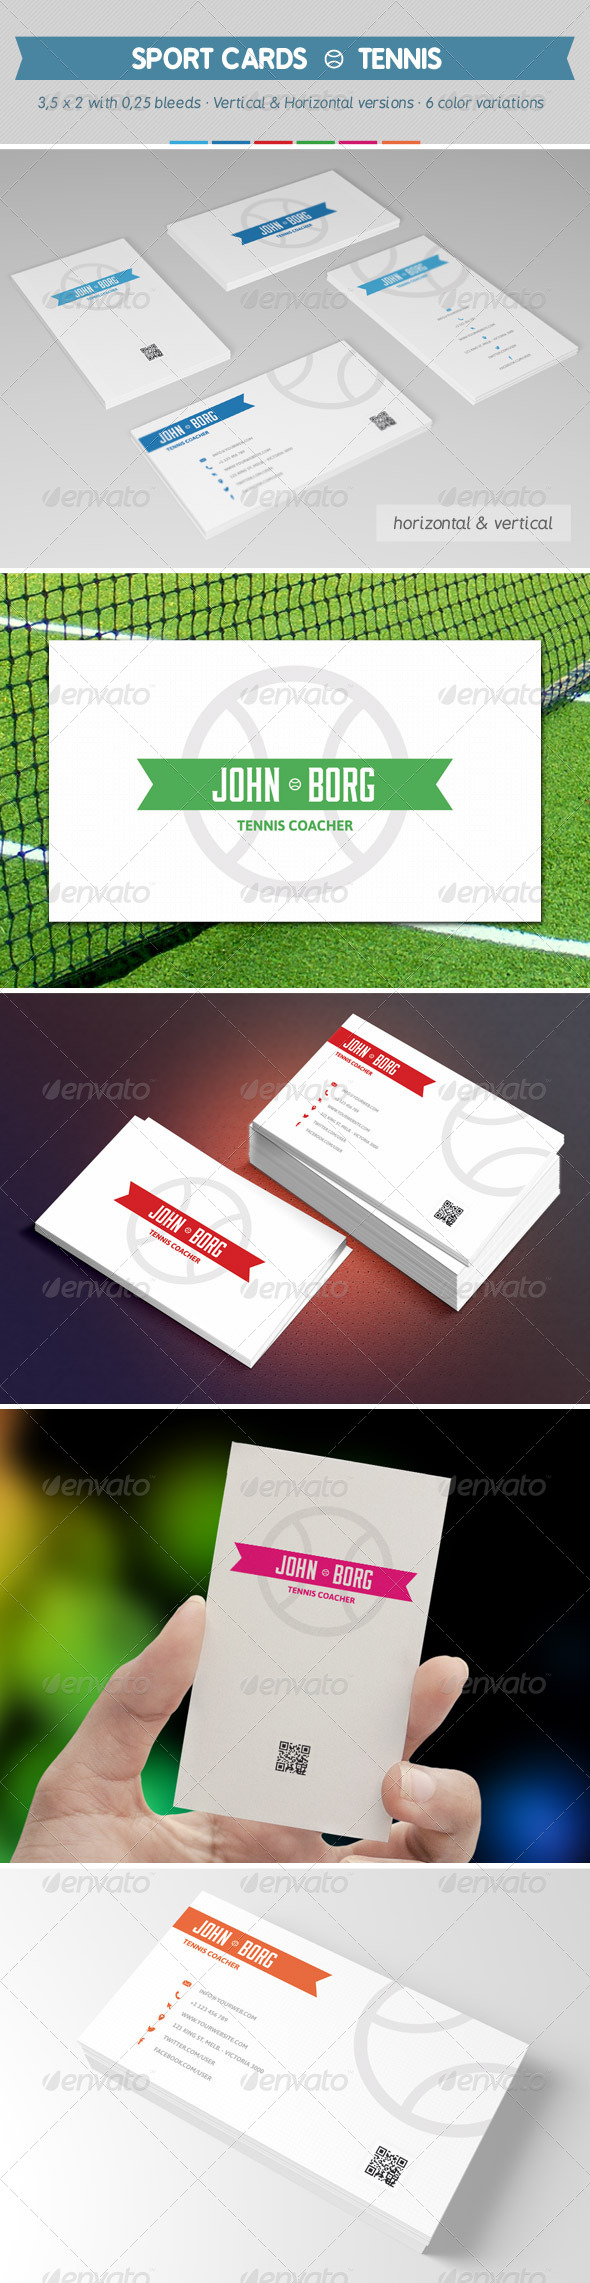 Sport Business Cards - Tennis by Sargatal2 | GraphicRiver